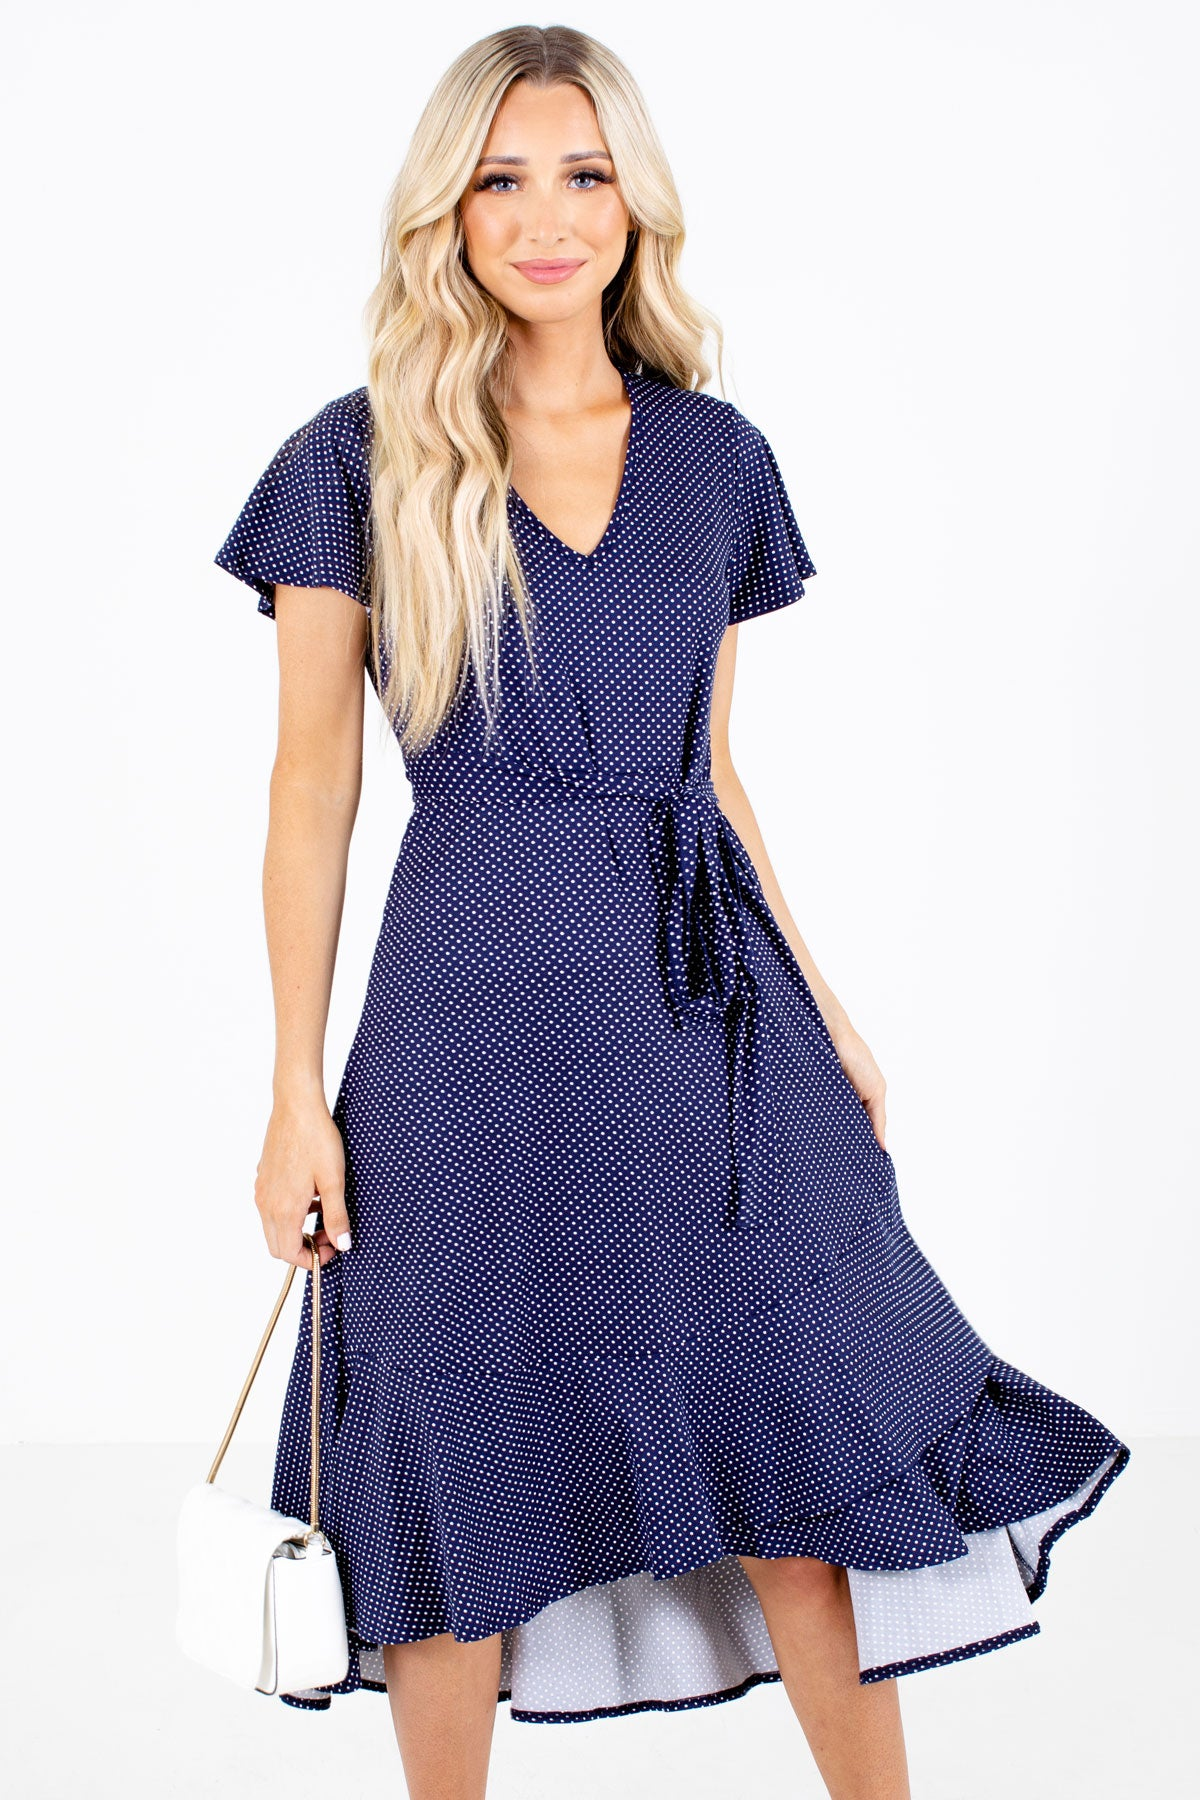 Navy and White Polka Dot Boutique Dresses for Women